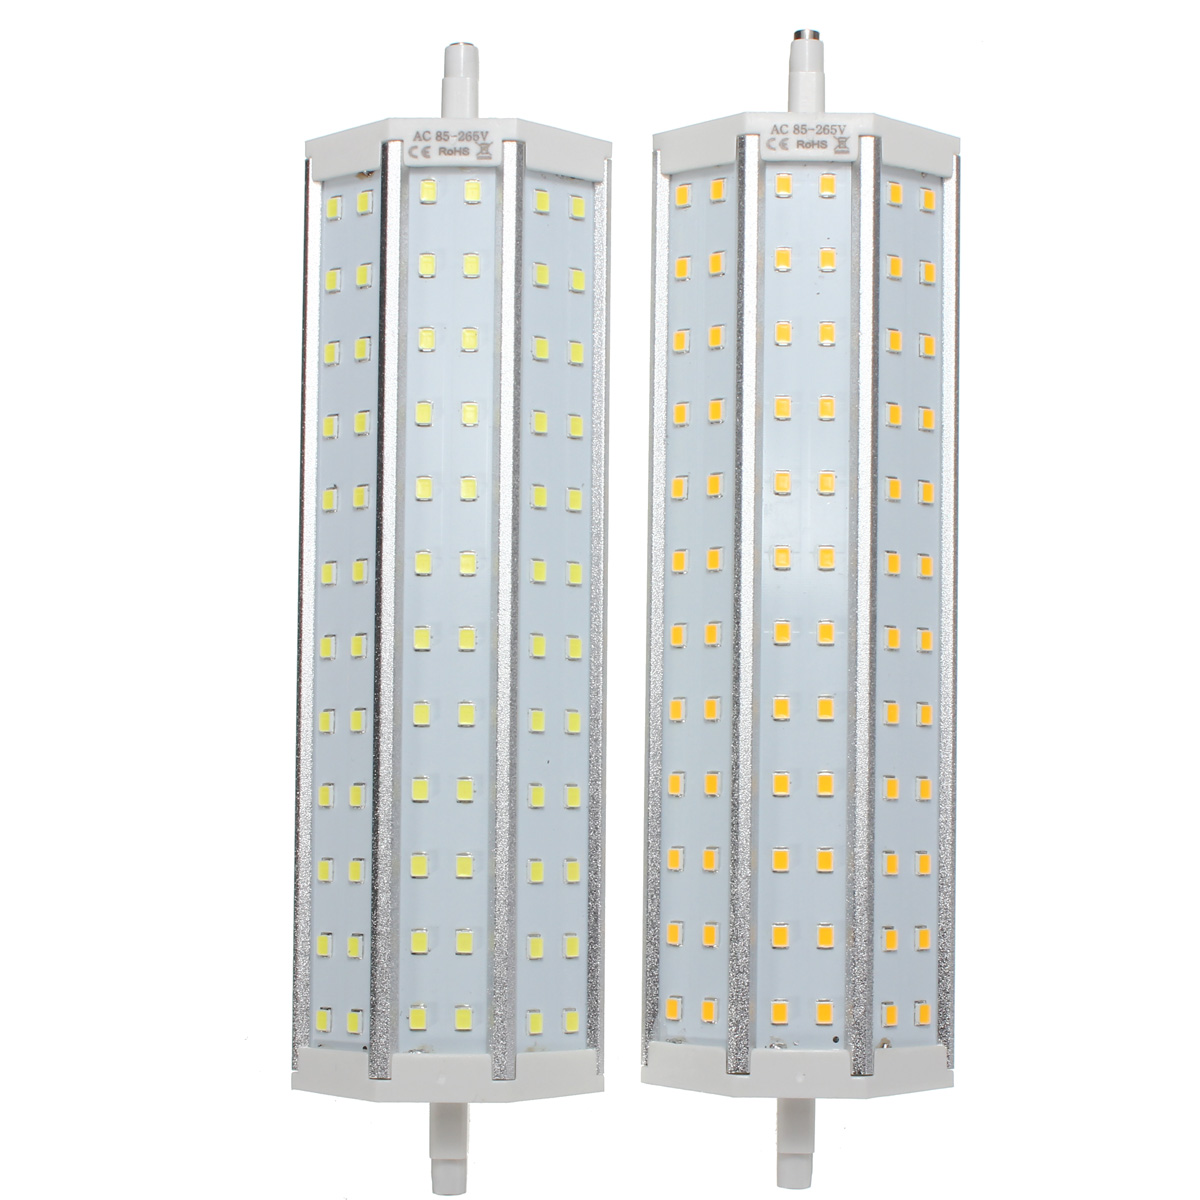 Dimmable R7S 14W 72 SMD 2835 1300Lm LED Flood Light Lighting Bulb AC 85-265V